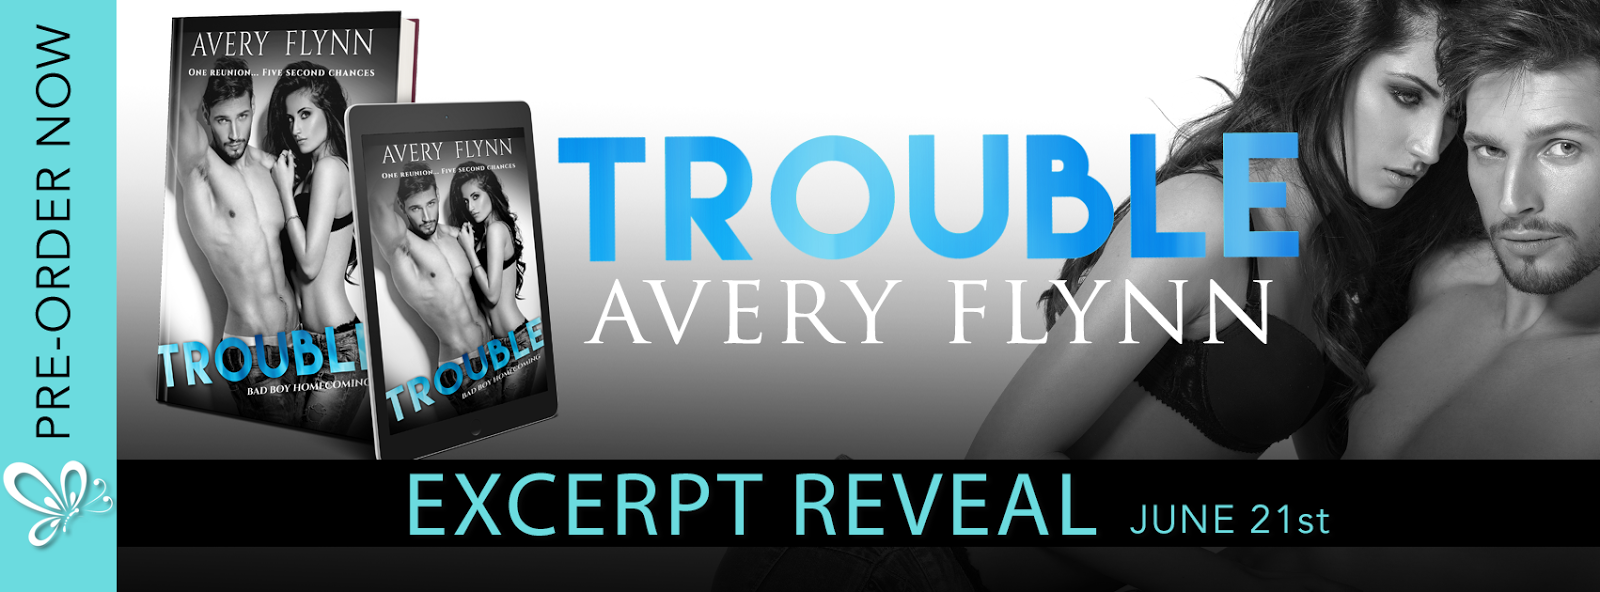 Trouble by Avery Flynn Excerpt Reveal